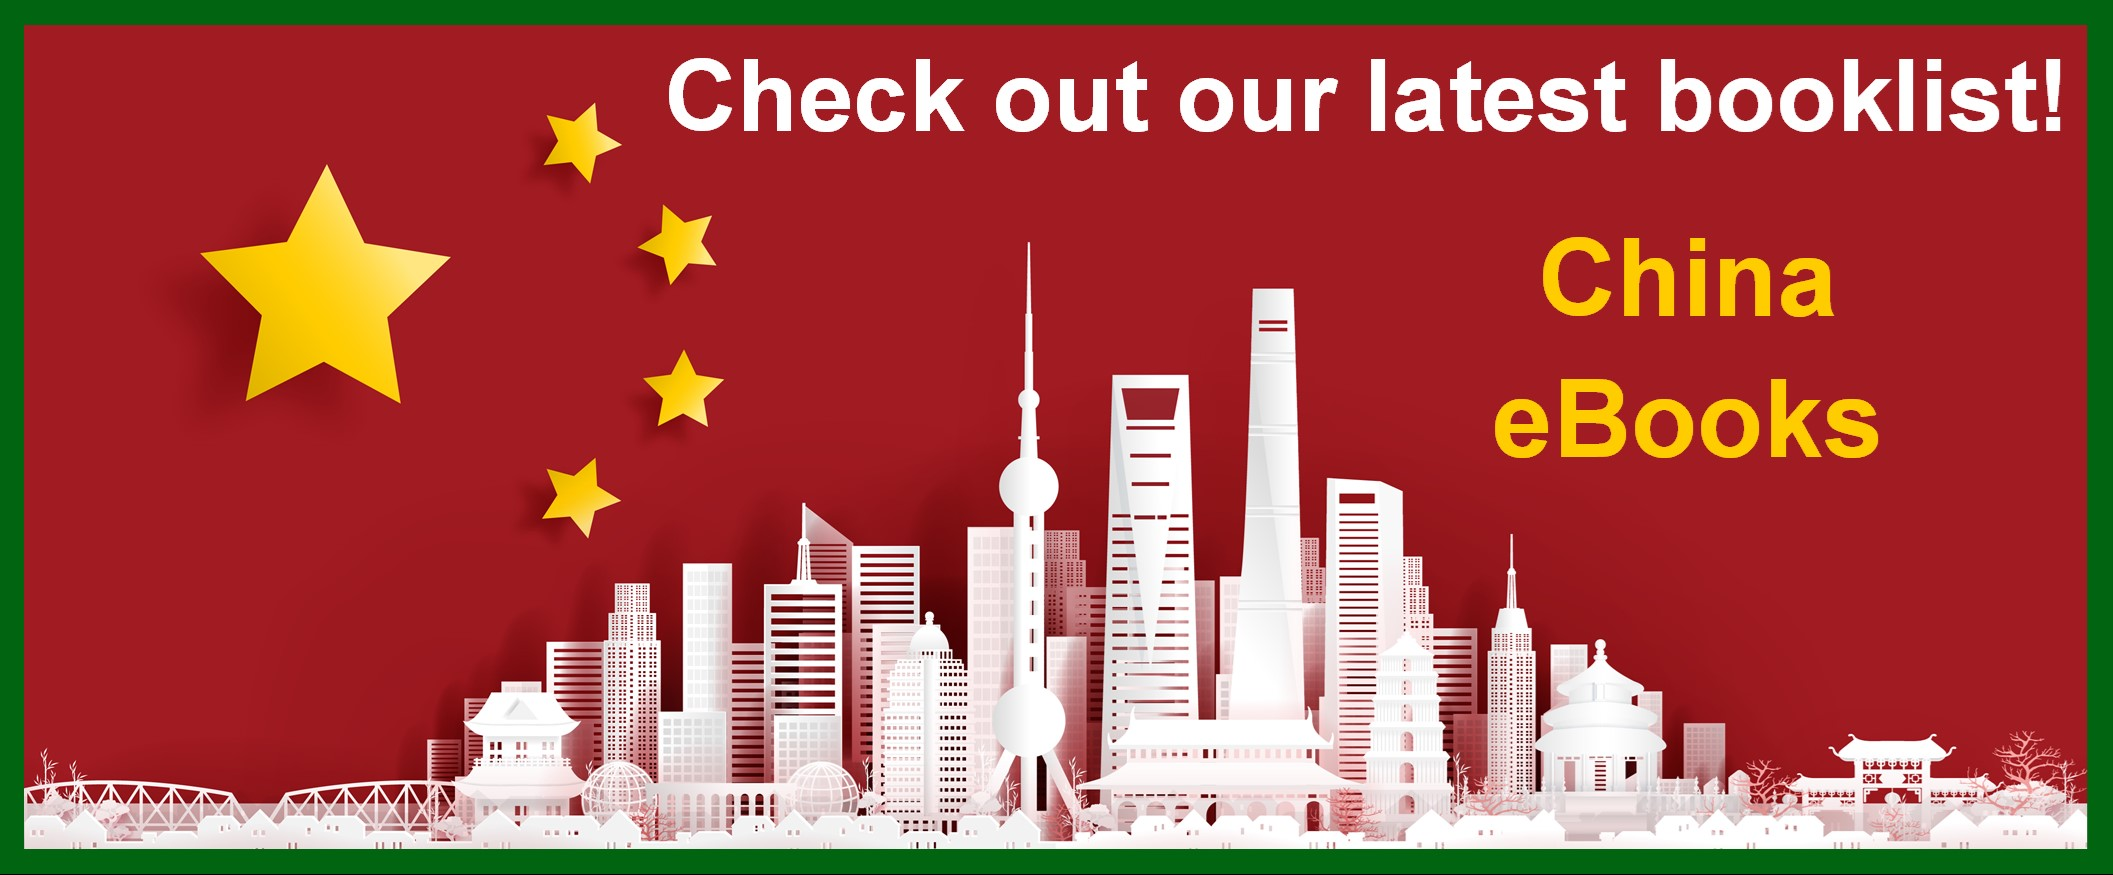 Check out our latest booklist! China eBooks